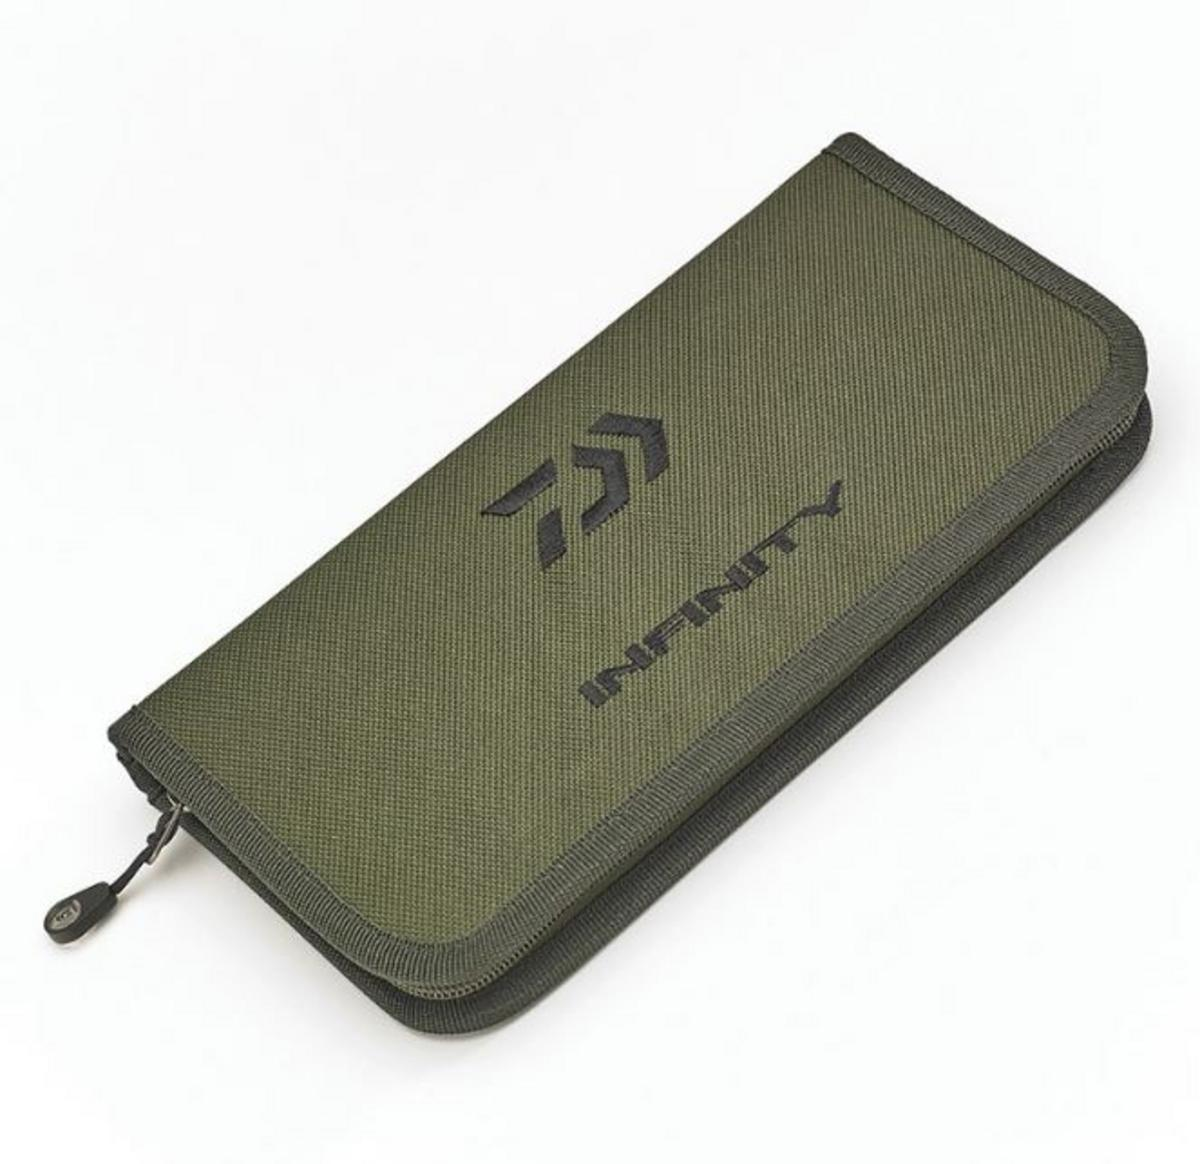 New Daiwa Infinity Rig Wallet - Single - Bar & Peg System - IRW1